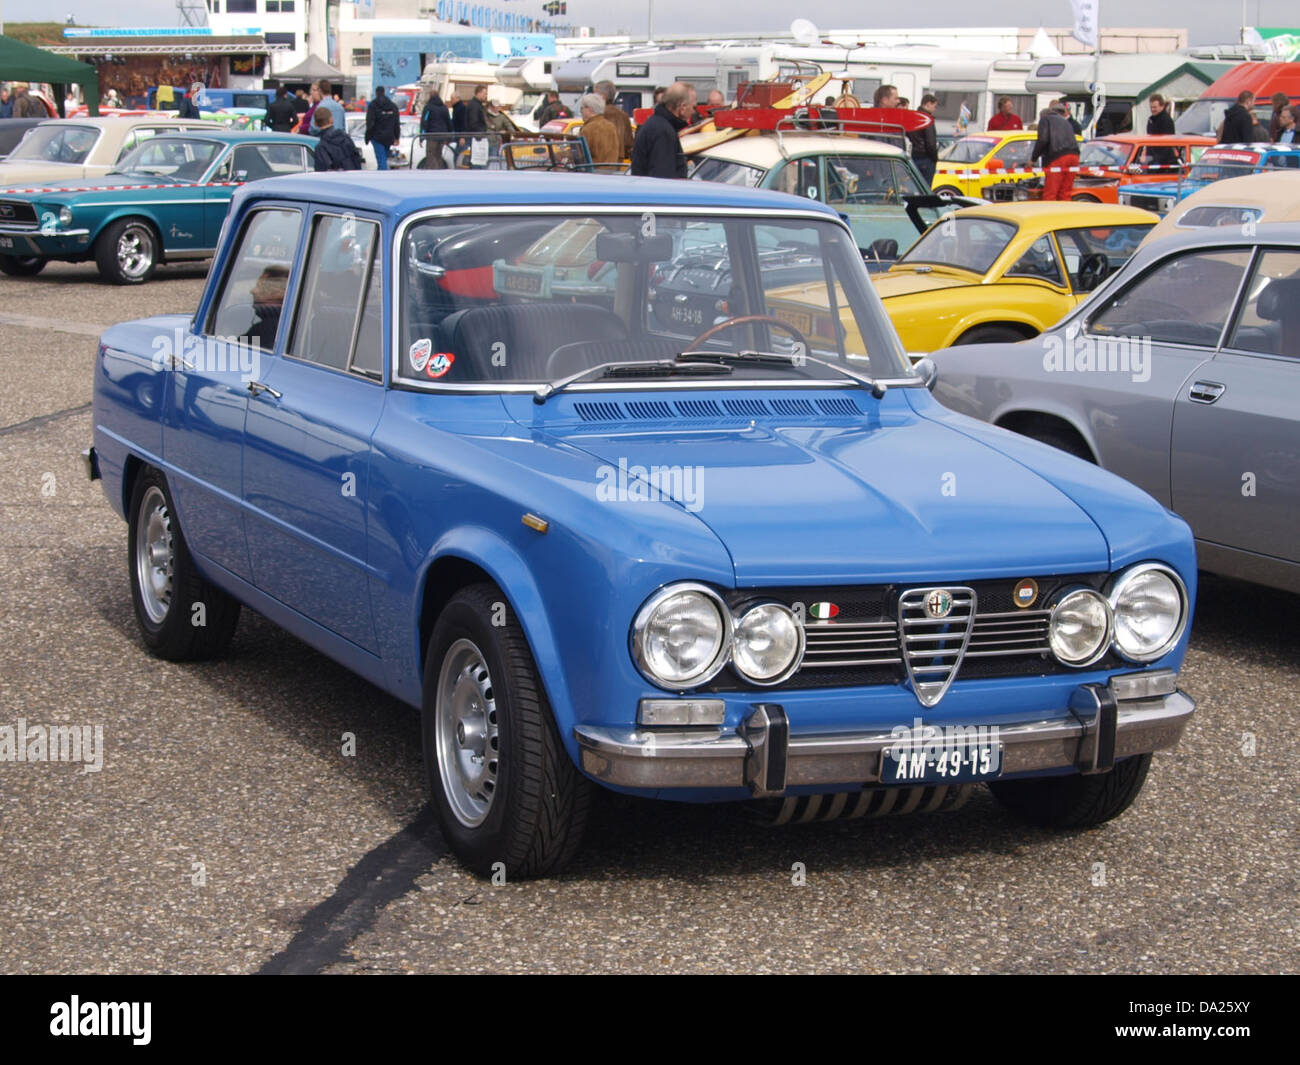 ALFA ROMEO GIULIA SUPER LUSSO AM Stock Photo - Alfa romeo giulia 1972